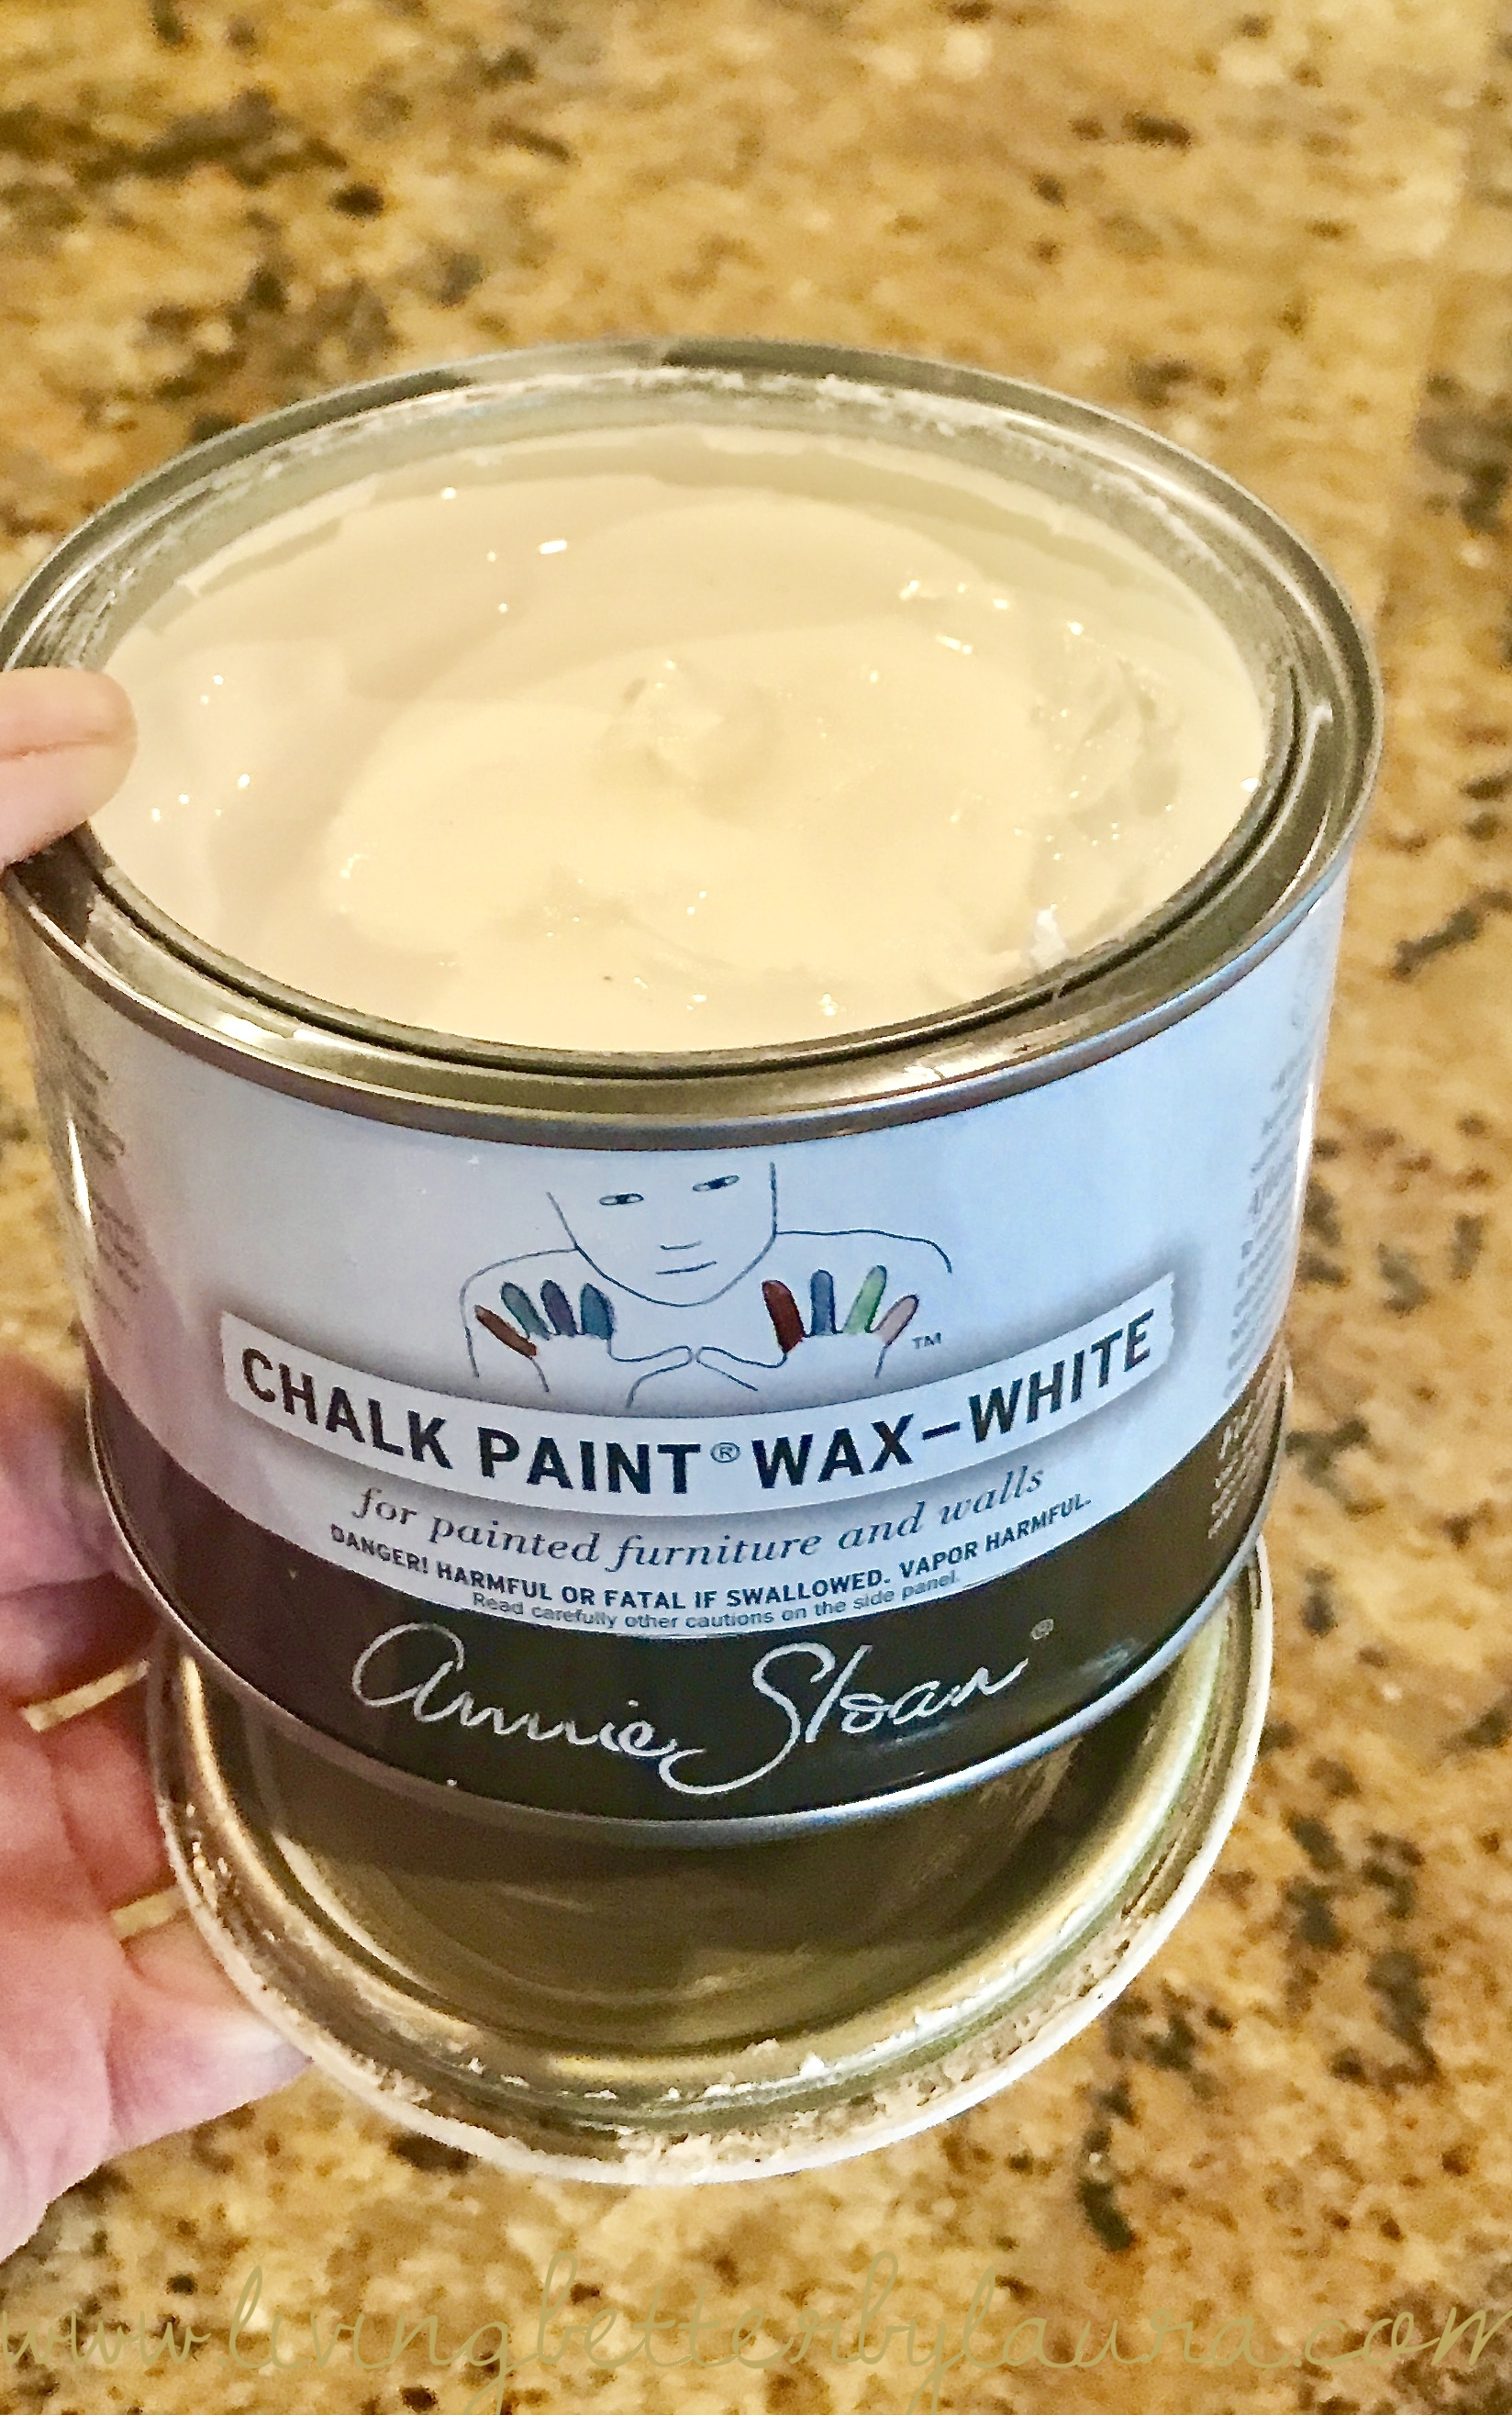 """STEP #4:  I went over the entire frame with one coat of Annie Sloan White Wax using one of Annie's wax brushes. A base coat of clear or white wax is needed before a dark was - so that the wood doesn't """"grab"""" the dark wax. It makes it easier to control the amount of dark stain.I chose Annie's white to pale out the paint colors and dull the contrast for the Base wax in this case. Most usually I use the Clear Version. After the coat of wax I immediately buffed the frame with an old, soft cotton rag, formerly a tee shirt."""